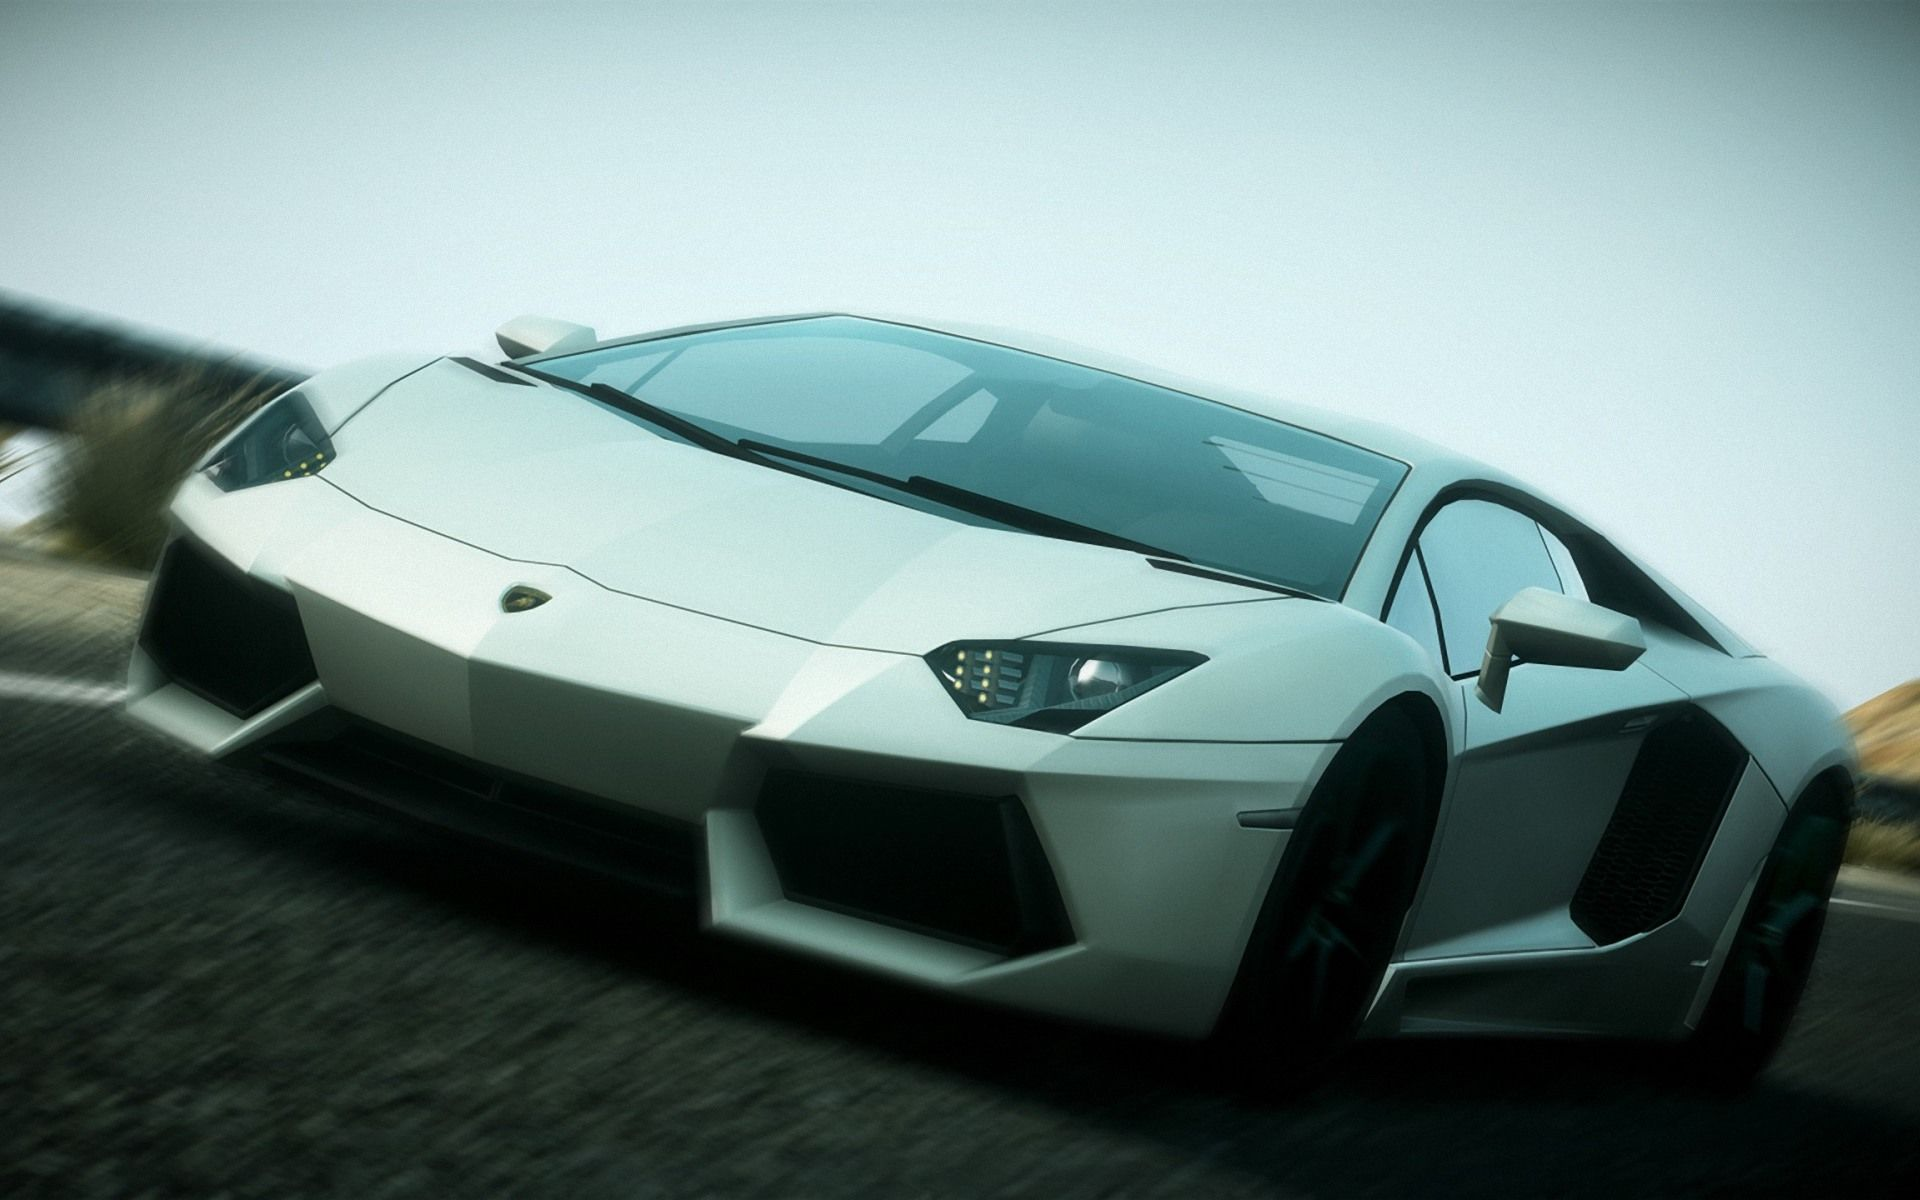 Cool Lamborghini Wallpapers 1920x1200